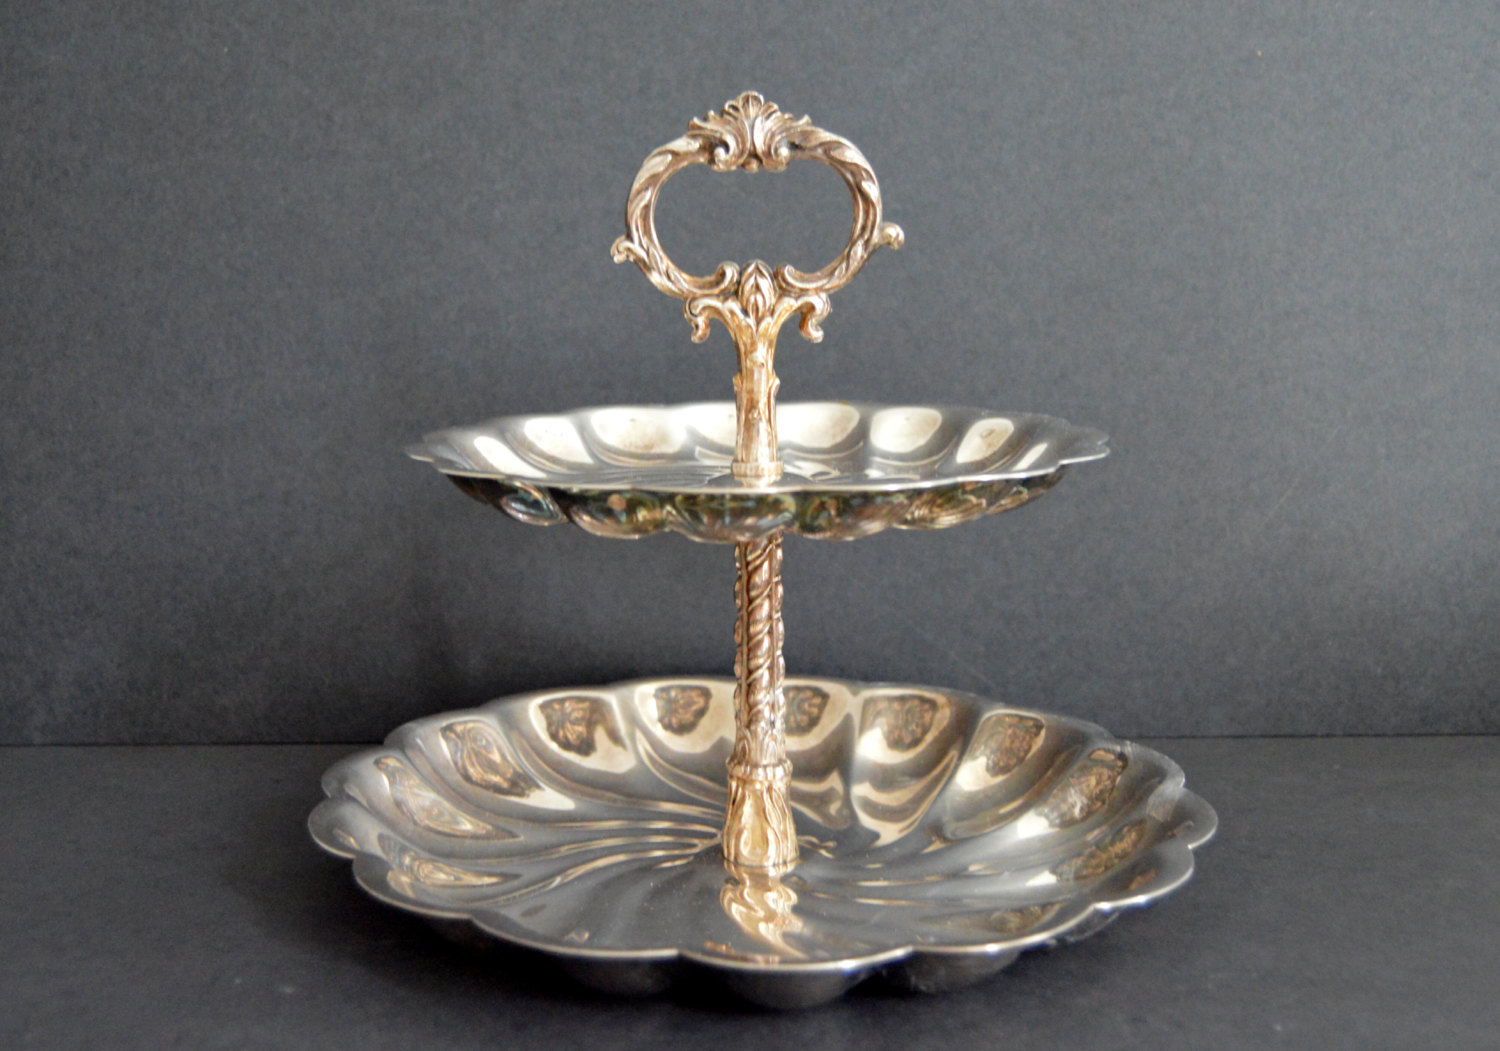 FB Rogers Two-Tier Serving Tray